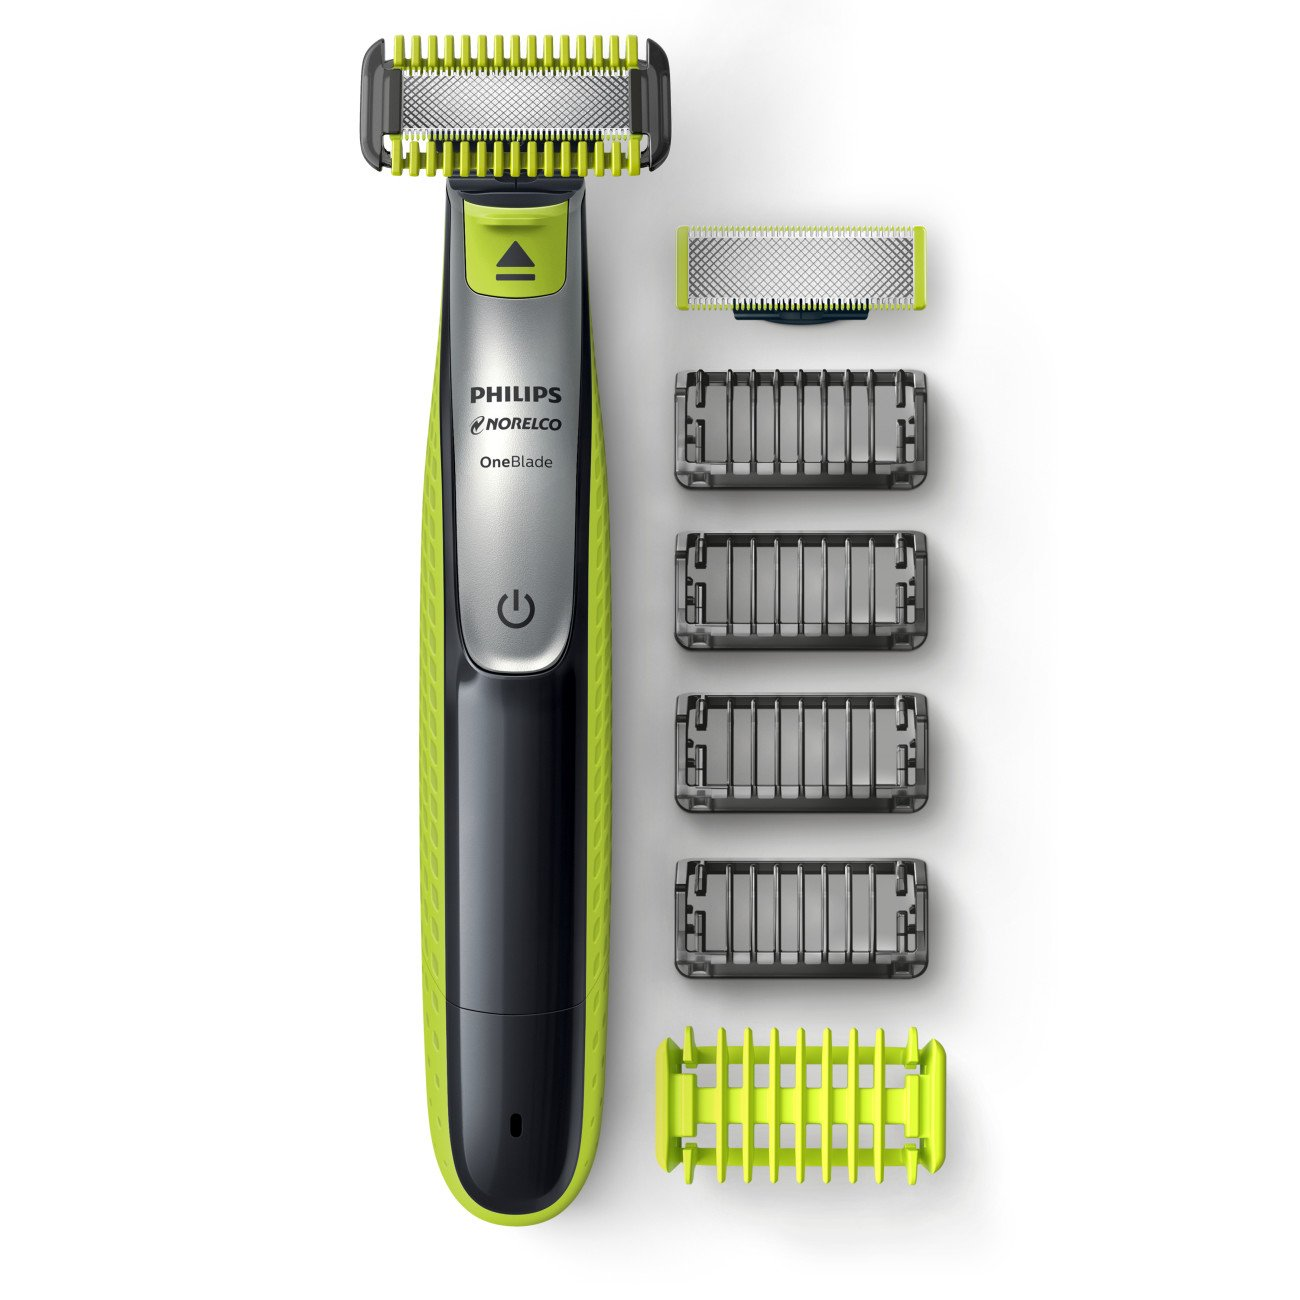 Philips Norelco OneBlade Face + Body Hybrid Electric Trimmer and Shaver